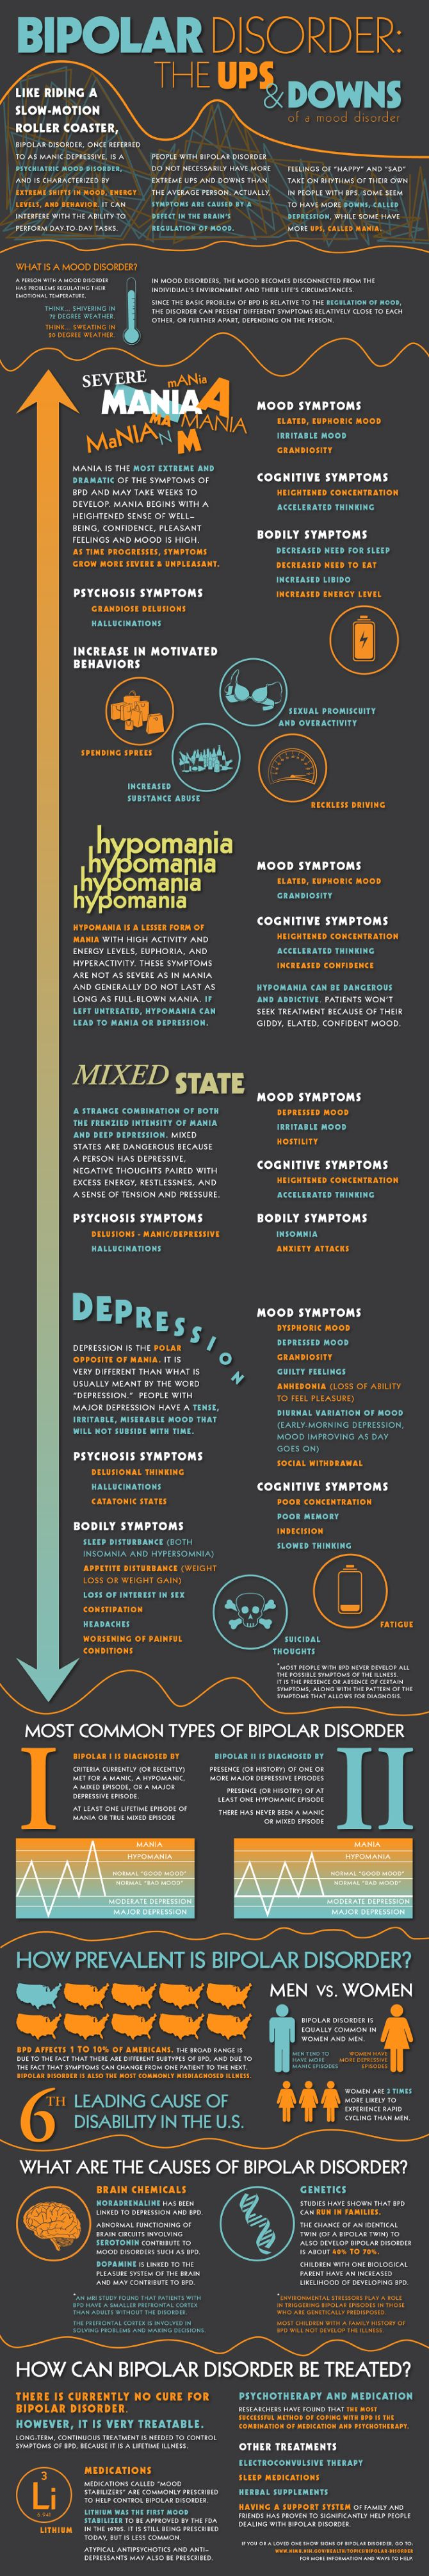 Psychology  Bipolar Disorder Infographic An Infographic. Medical Colleges In Texas Iso 27000 Standards. Executive Education Harvard Rad Tech School. Business Lawyer In Houston Title Loan Austin. Personal Injury Lawyers Long Island. Compare Home Security Prices. Best Credit Card Rates And Rewards. Best Value 10 Inch Tablet Clear Point Credit. Medicare Processing Manual Master Social Work